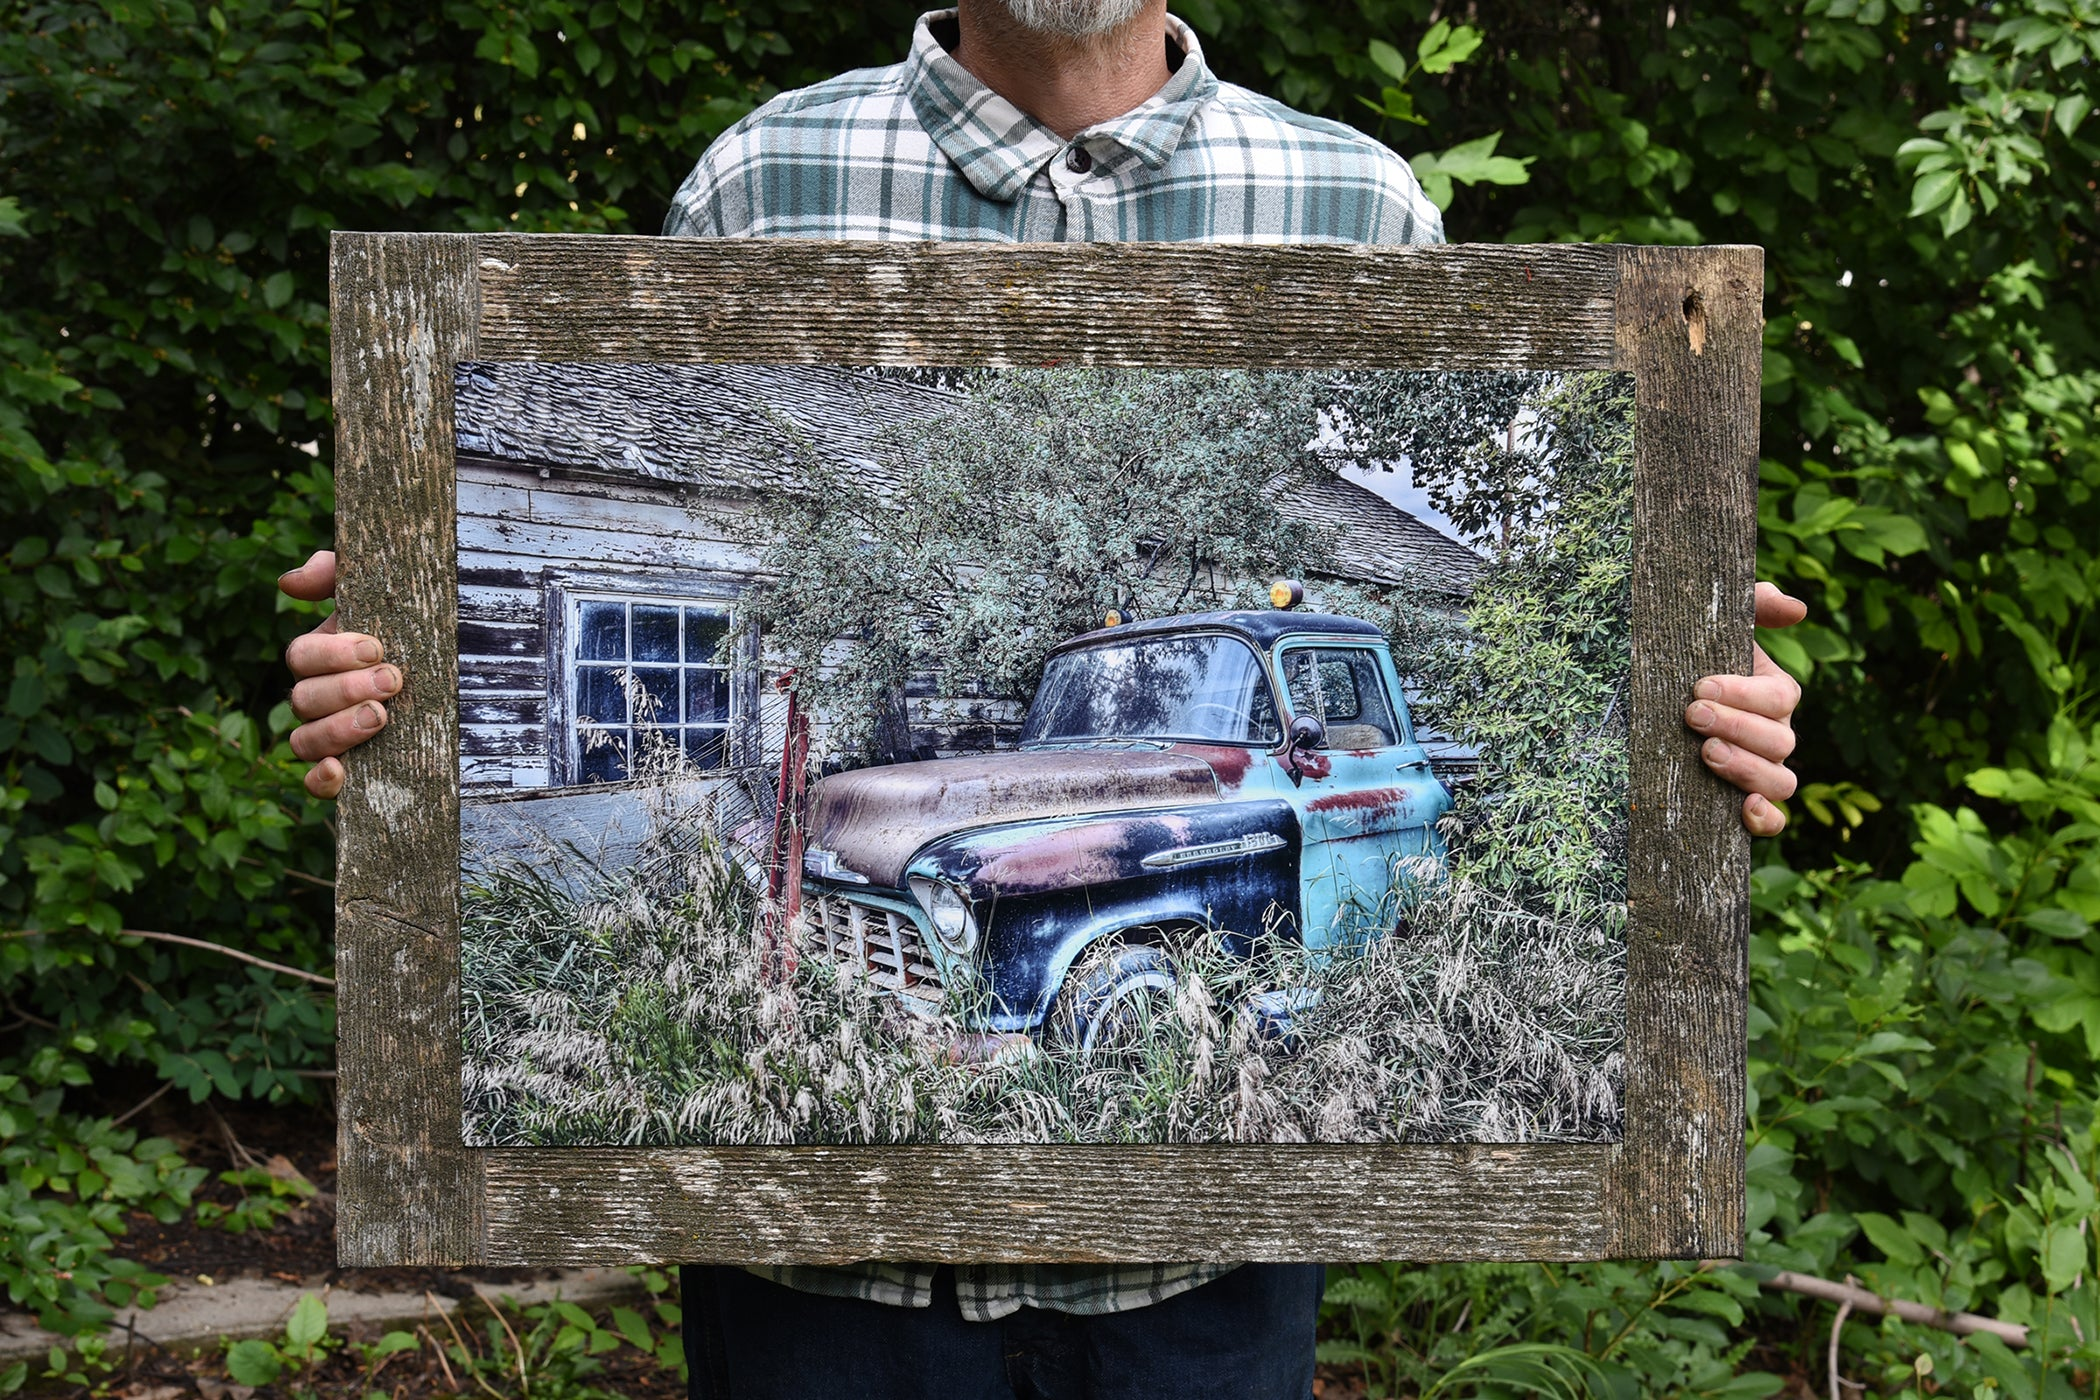 1956's Chevrolet Truck barn wood frame